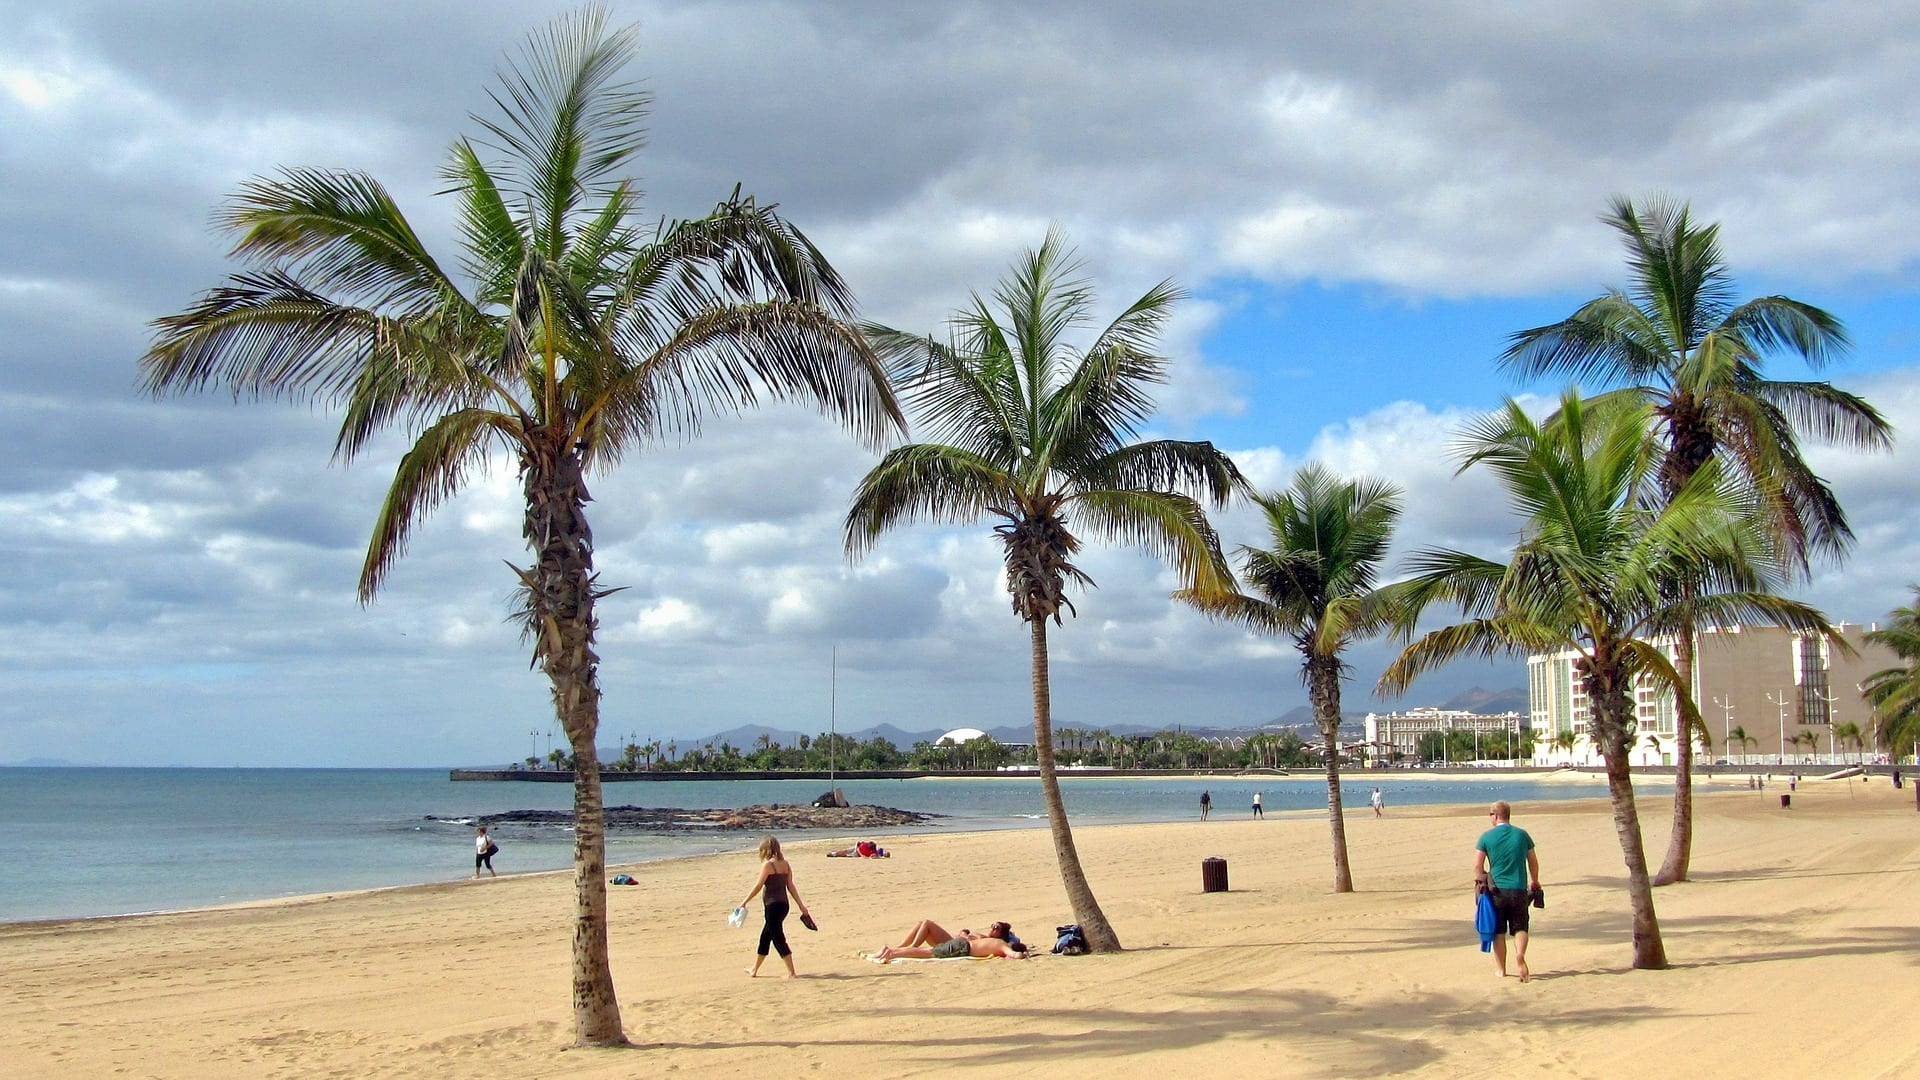 The Canary island of Lanzarote is another good choice for winter sun in December